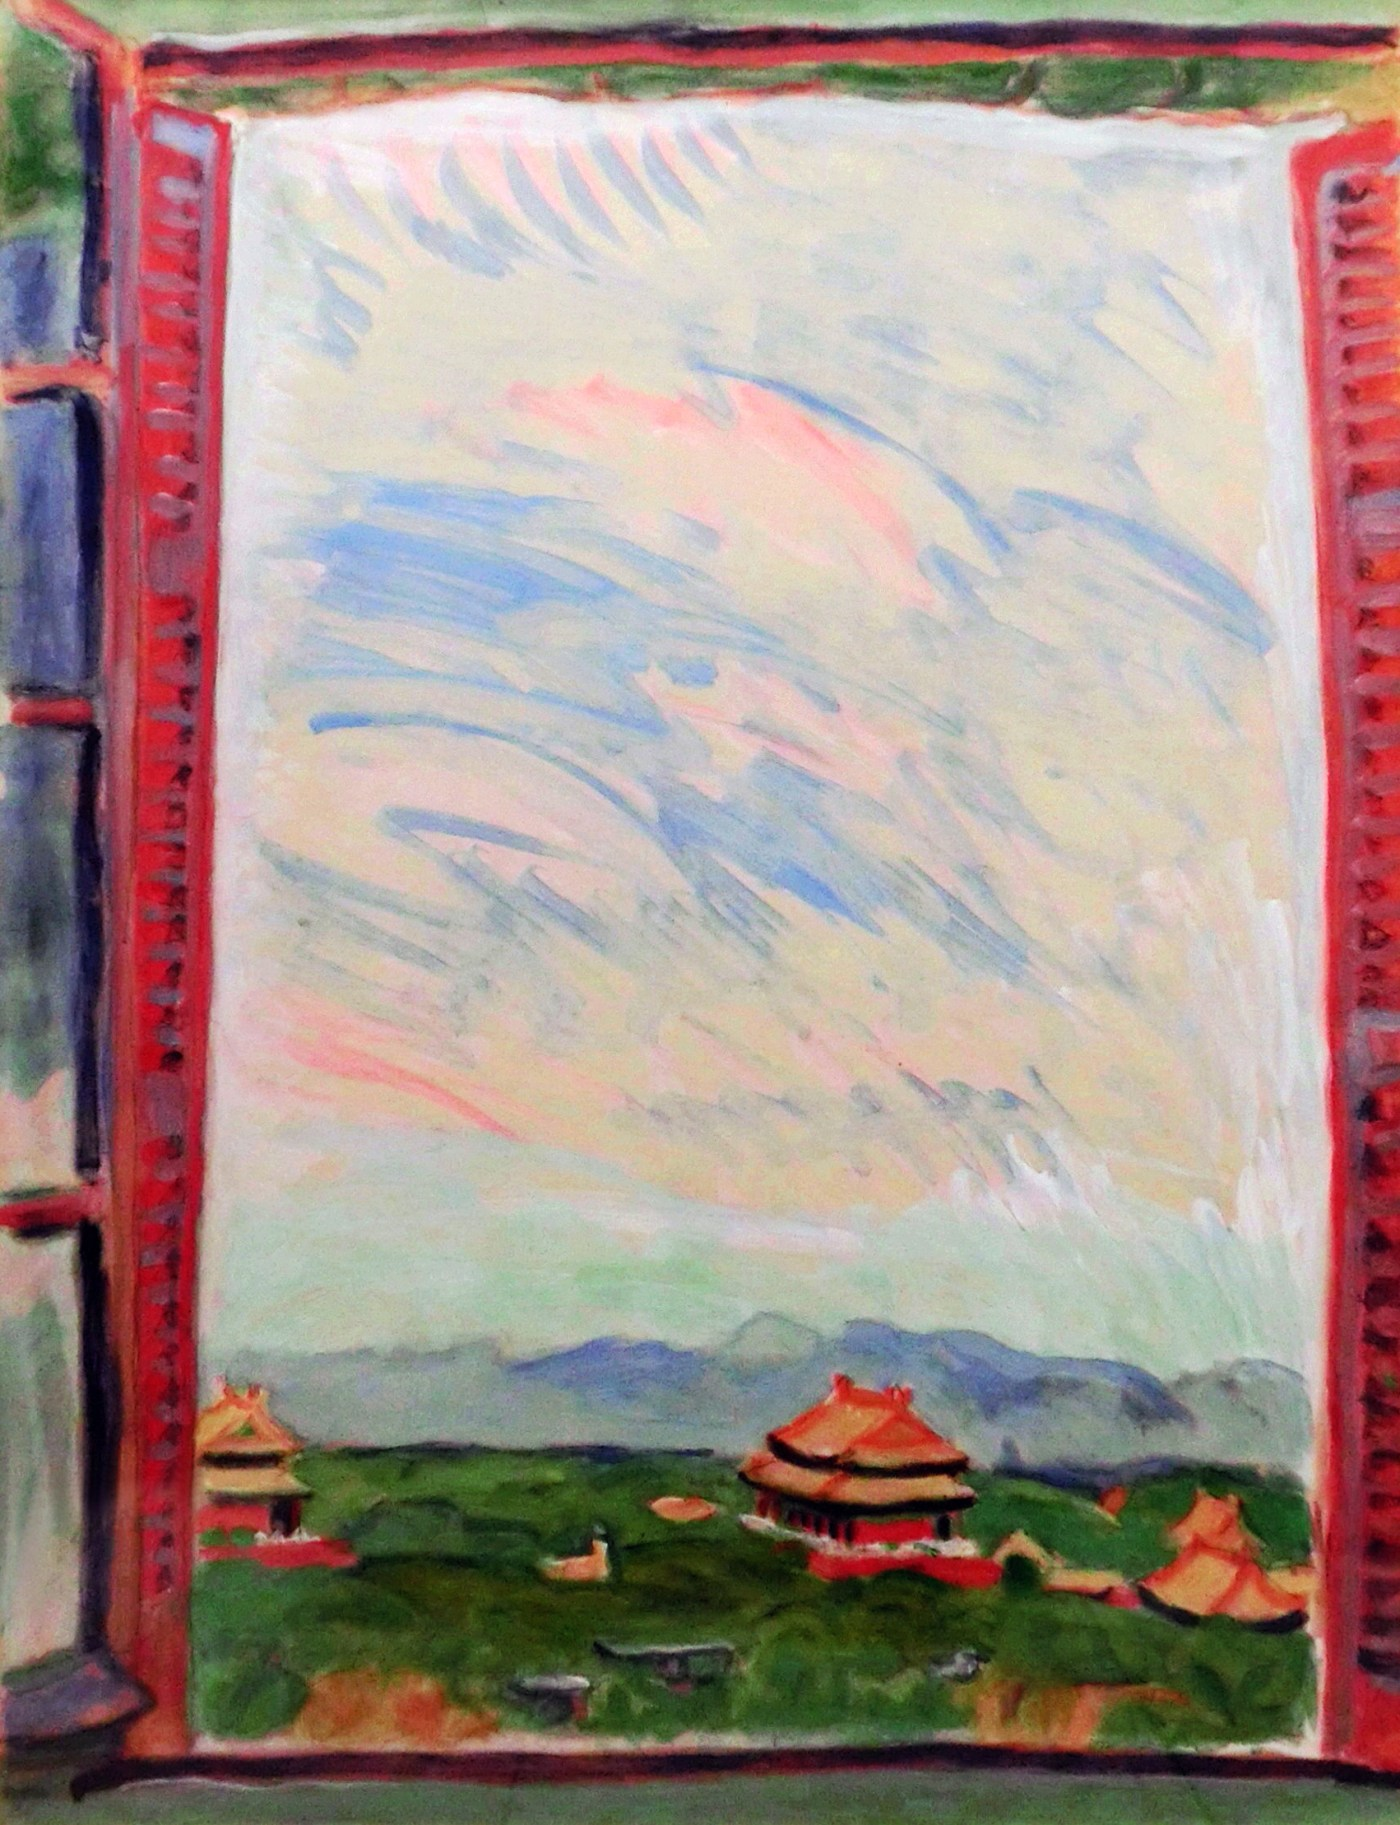 Umehara Ryuzaburo, 北京之窗 Window View of Beijing, 1943-2